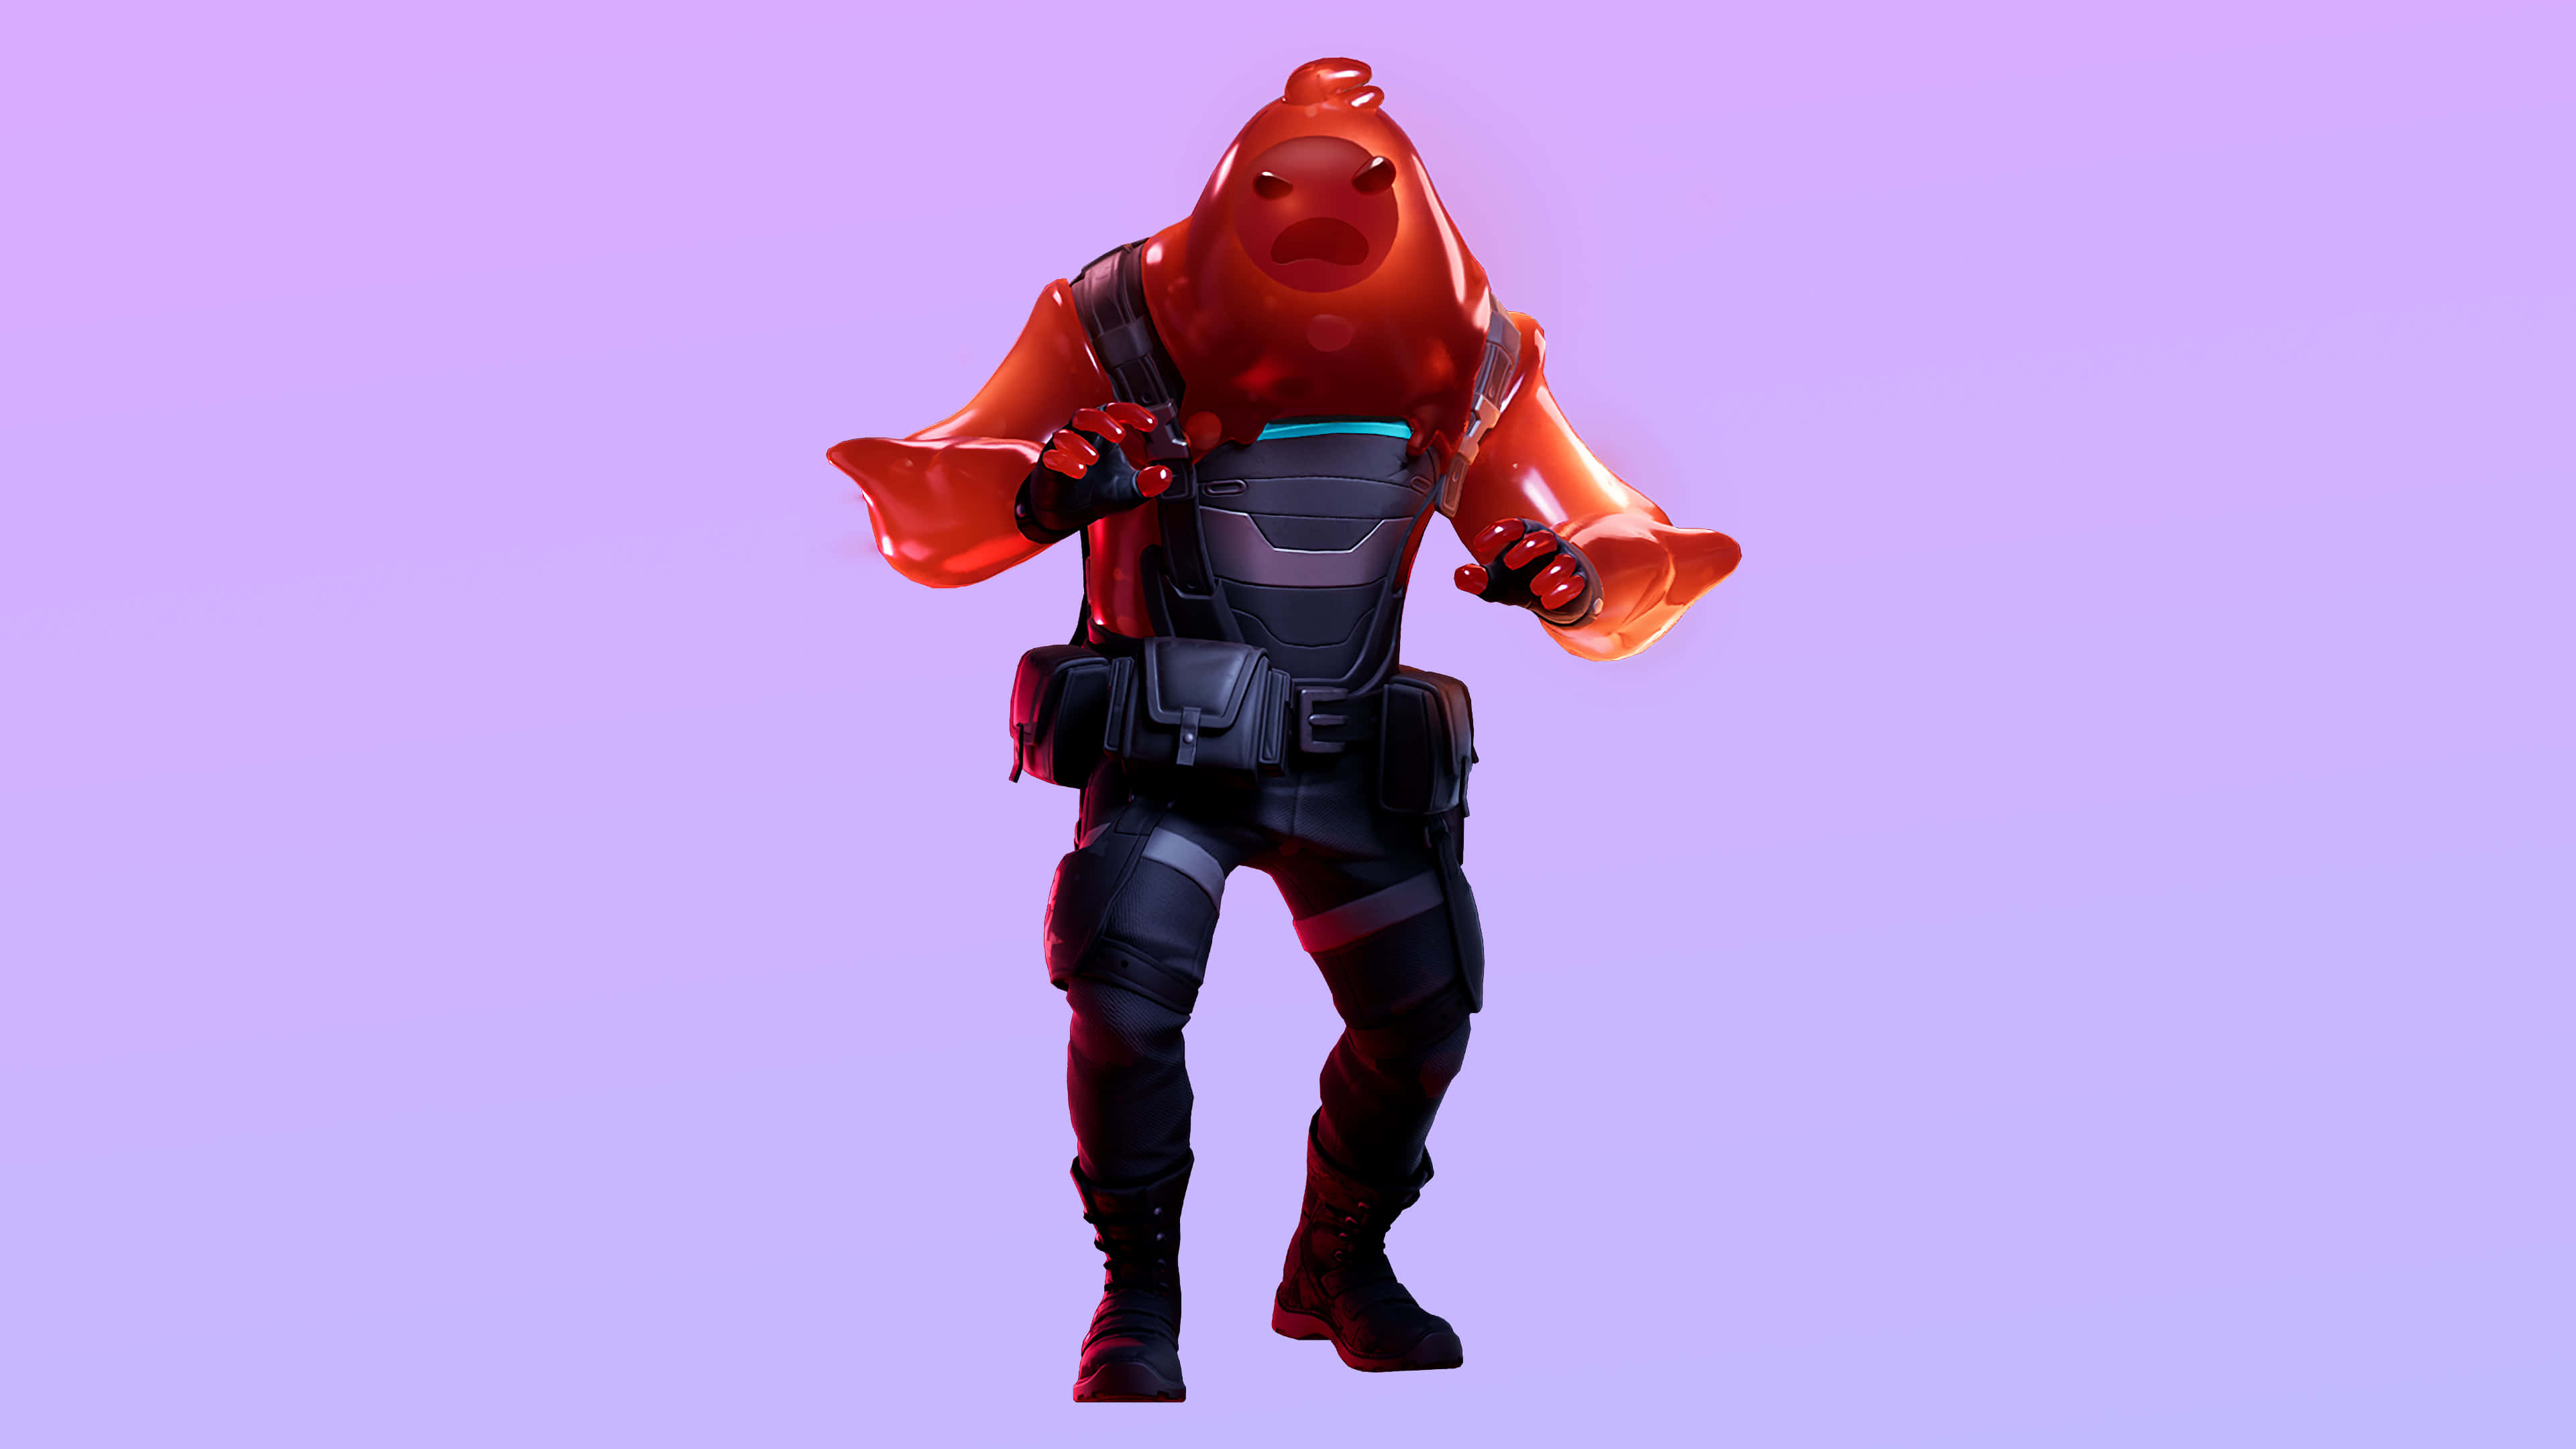 fortnite slurp squad set rippley vs sludge variant 2 skin outfit uhd 4k wallpaper